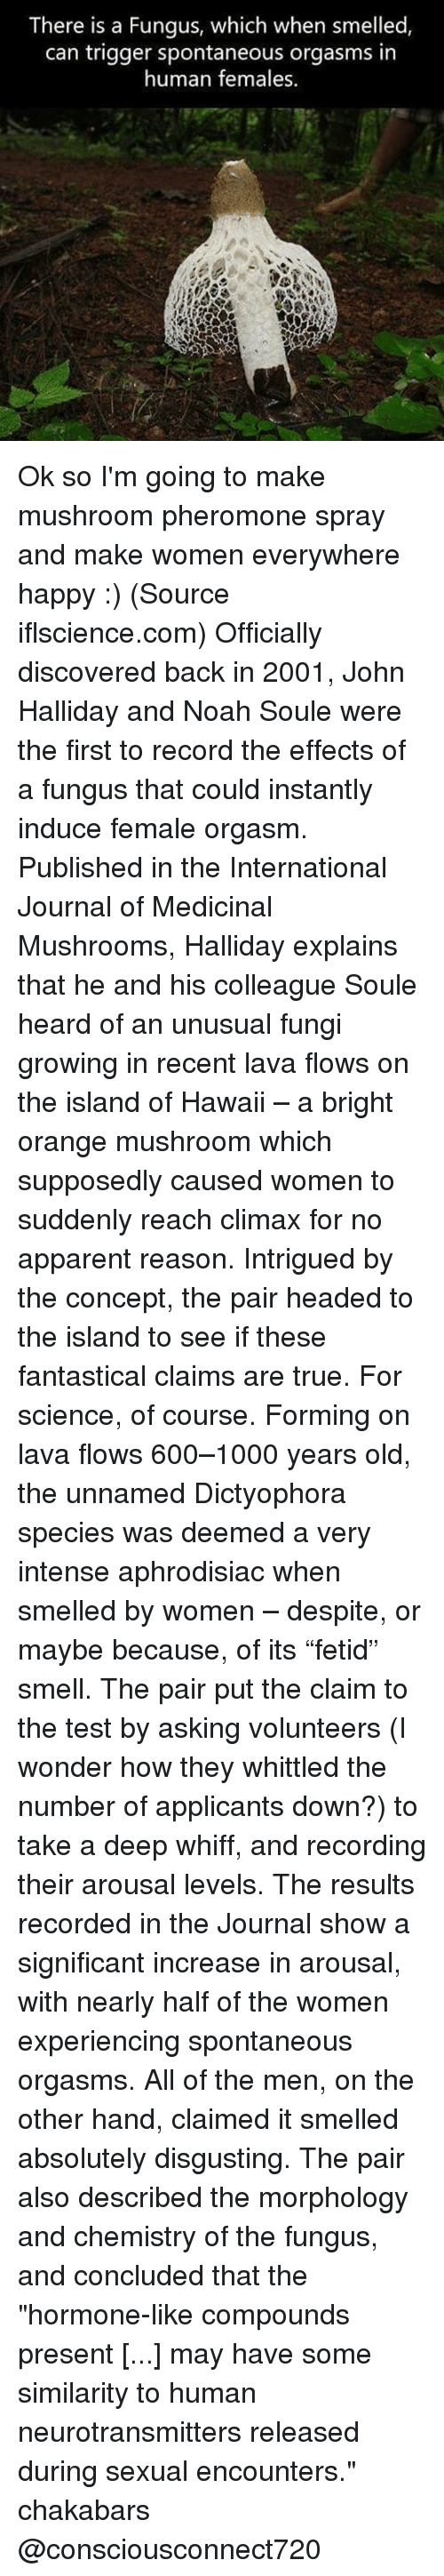 "Memes, Noah, and Hawaii: There is a Fungus, which when smelled  can trigger spontaneous orgasms in  human females. Ok so I'm going to make mushroom pheromone spray and make women everywhere happy :) (Source iflscience.com) Officially discovered back in 2001, John Halliday and Noah Soule were the first to record the effects of a fungus that could instantly induce female orgasm. Published in the International Journal of Medicinal Mushrooms, Halliday explains that he and his colleague Soule heard of an unusual fungi growing in recent lava flows on the island of Hawaii – a bright orange mushroom which supposedly caused women to suddenly reach climax for no apparent reason. Intrigued by the concept, the pair headed to the island to see if these fantastical claims are true. For science, of course. Forming on lava flows 600–1000 years old, the unnamed Dictyophora species was deemed a very intense aphrodisiac when smelled by women – despite, or maybe because, of its ""fetid"" smell. The pair put the claim to the test by asking volunteers (I wonder how they whittled the number of applicants down?) to take a deep whiff, and recording their arousal levels. The results recorded in the Journal show a significant increase in arousal, with nearly half of the women experiencing spontaneous orgasms. All of the men, on the other hand, claimed it smelled absolutely disgusting. The pair also described the morphology and chemistry of the fungus, and concluded that the ""hormone-like compounds present [...] may have some similarity to human neurotransmitters released during sexual encounters."" chakabars @consciousconnect720"